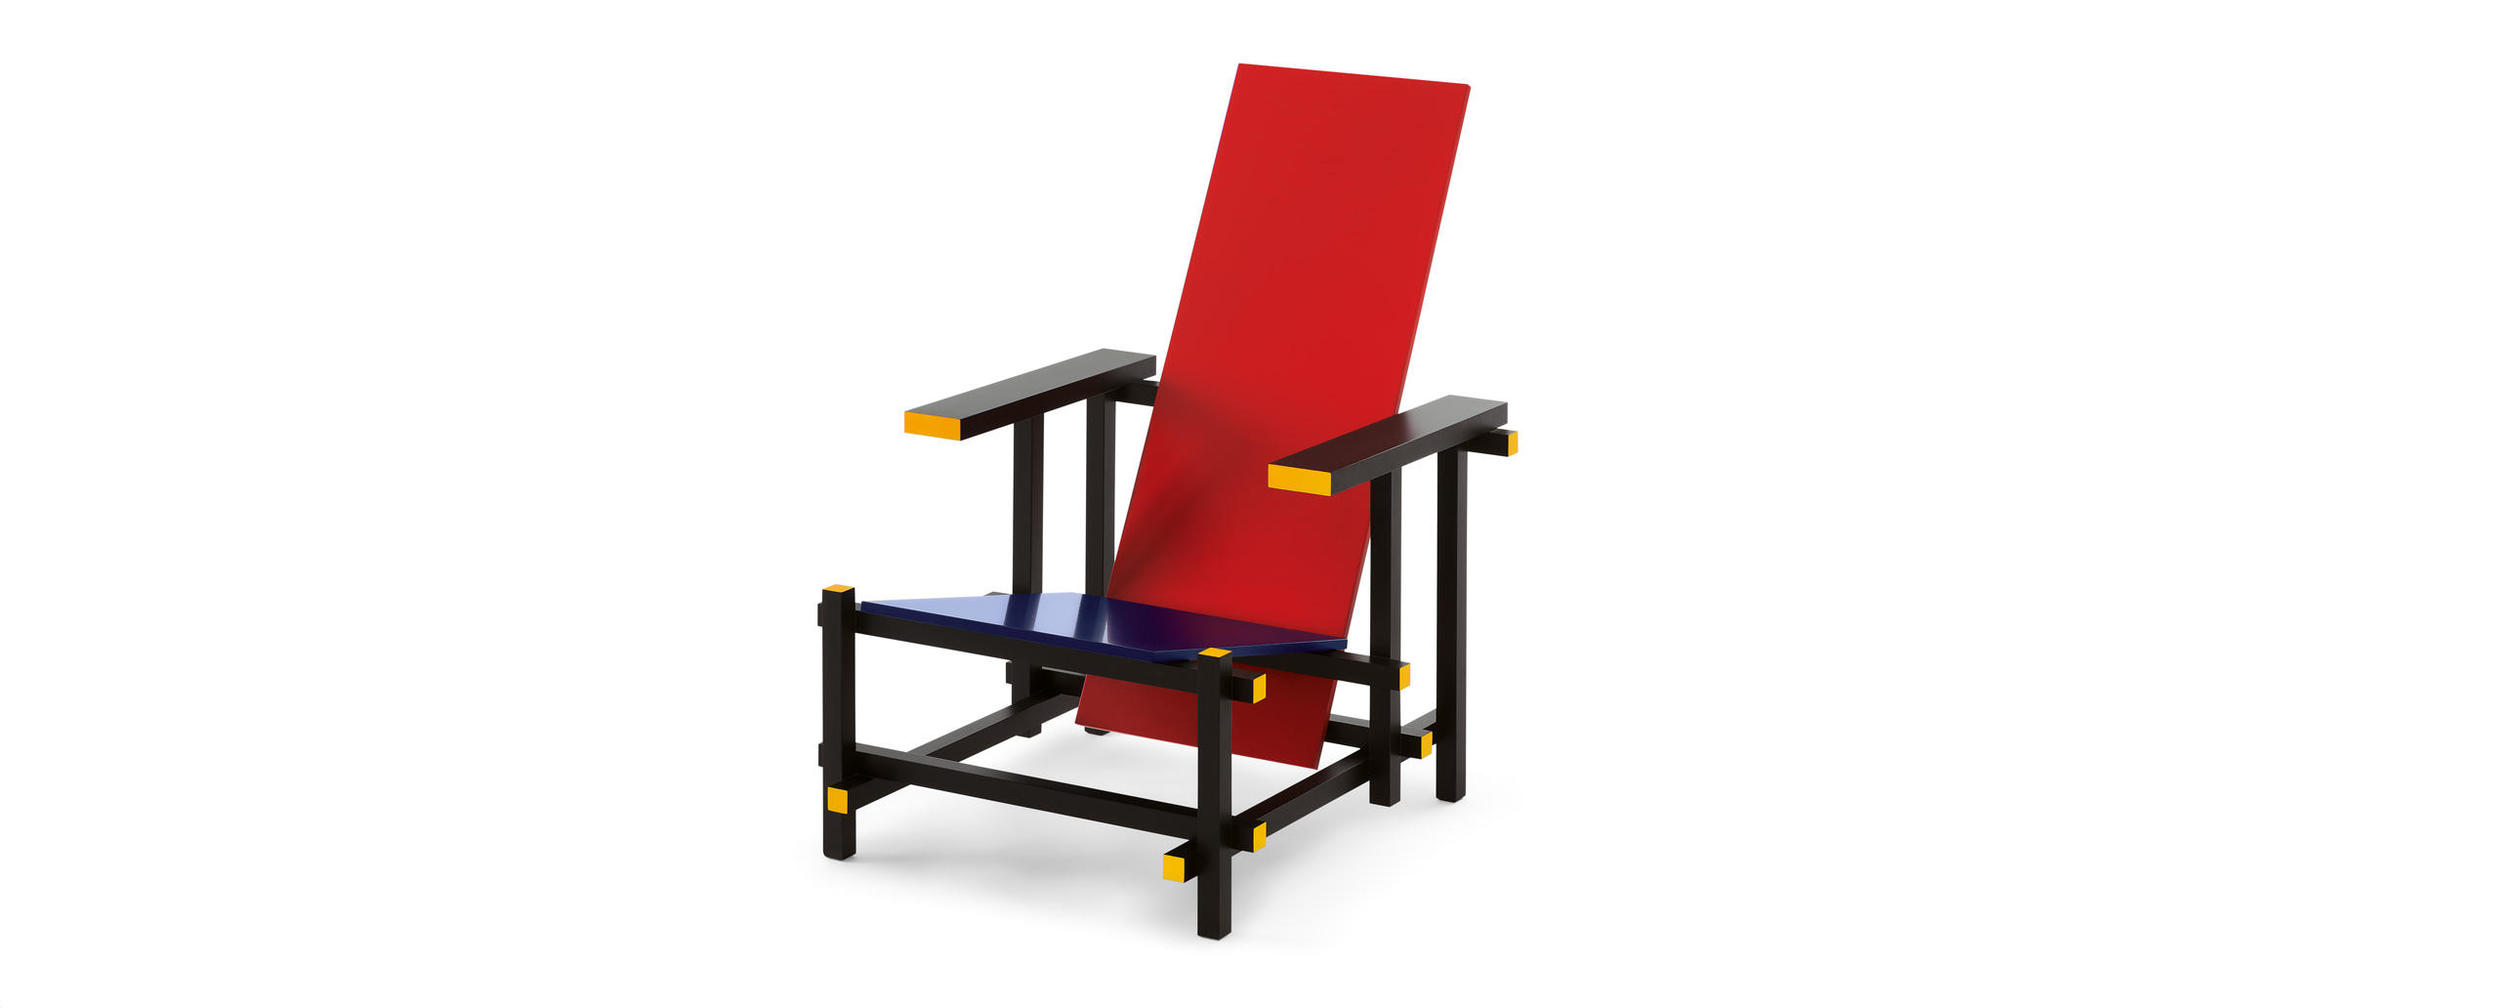 Gerrit Rietveld,  Red and Blue Chair , 1917.